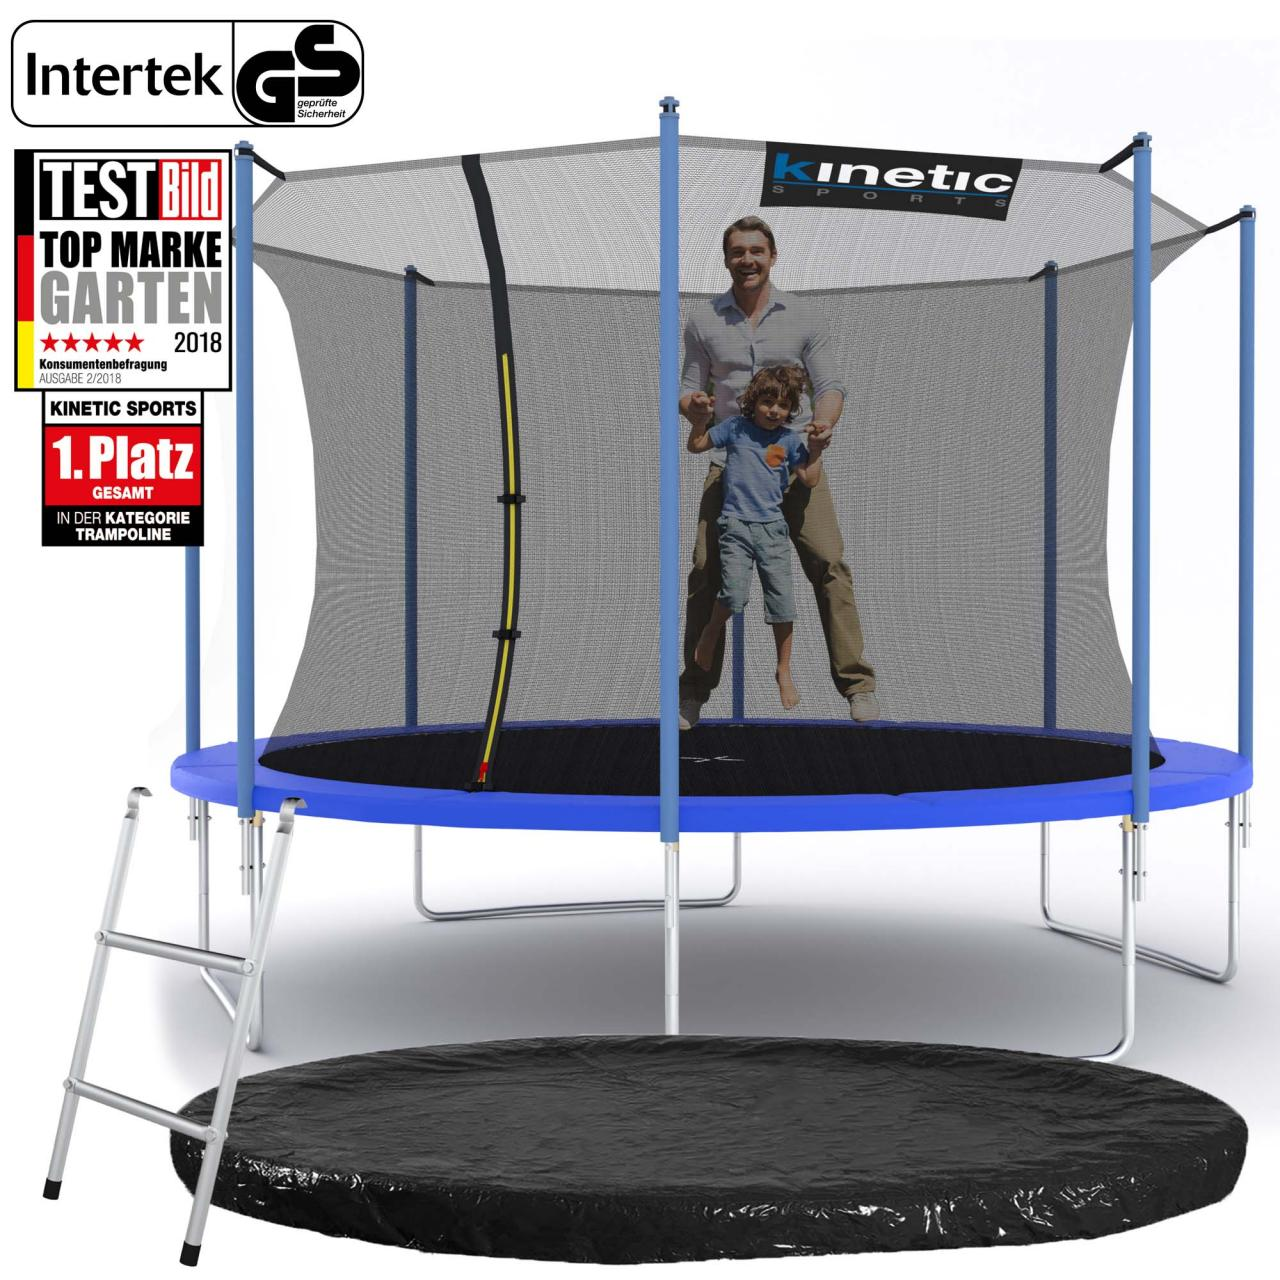 kinetic sports trampolin gartentrampolin mit zubeh r netz leiter regenplane set ebay. Black Bedroom Furniture Sets. Home Design Ideas